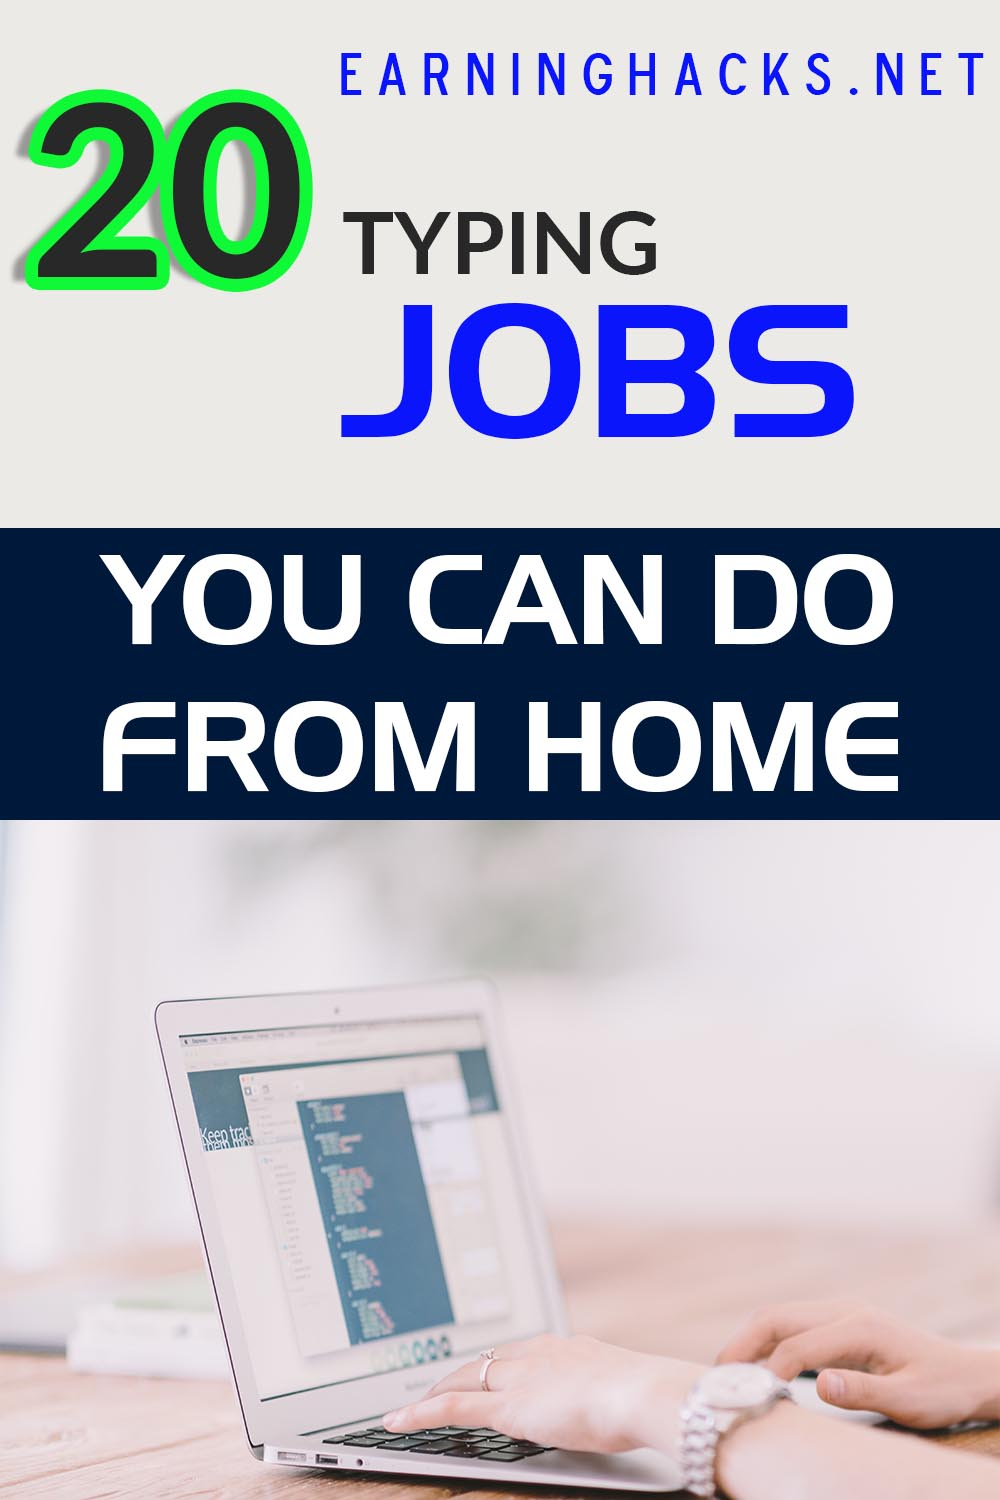 20 Typing Jobs You Can Do From Home